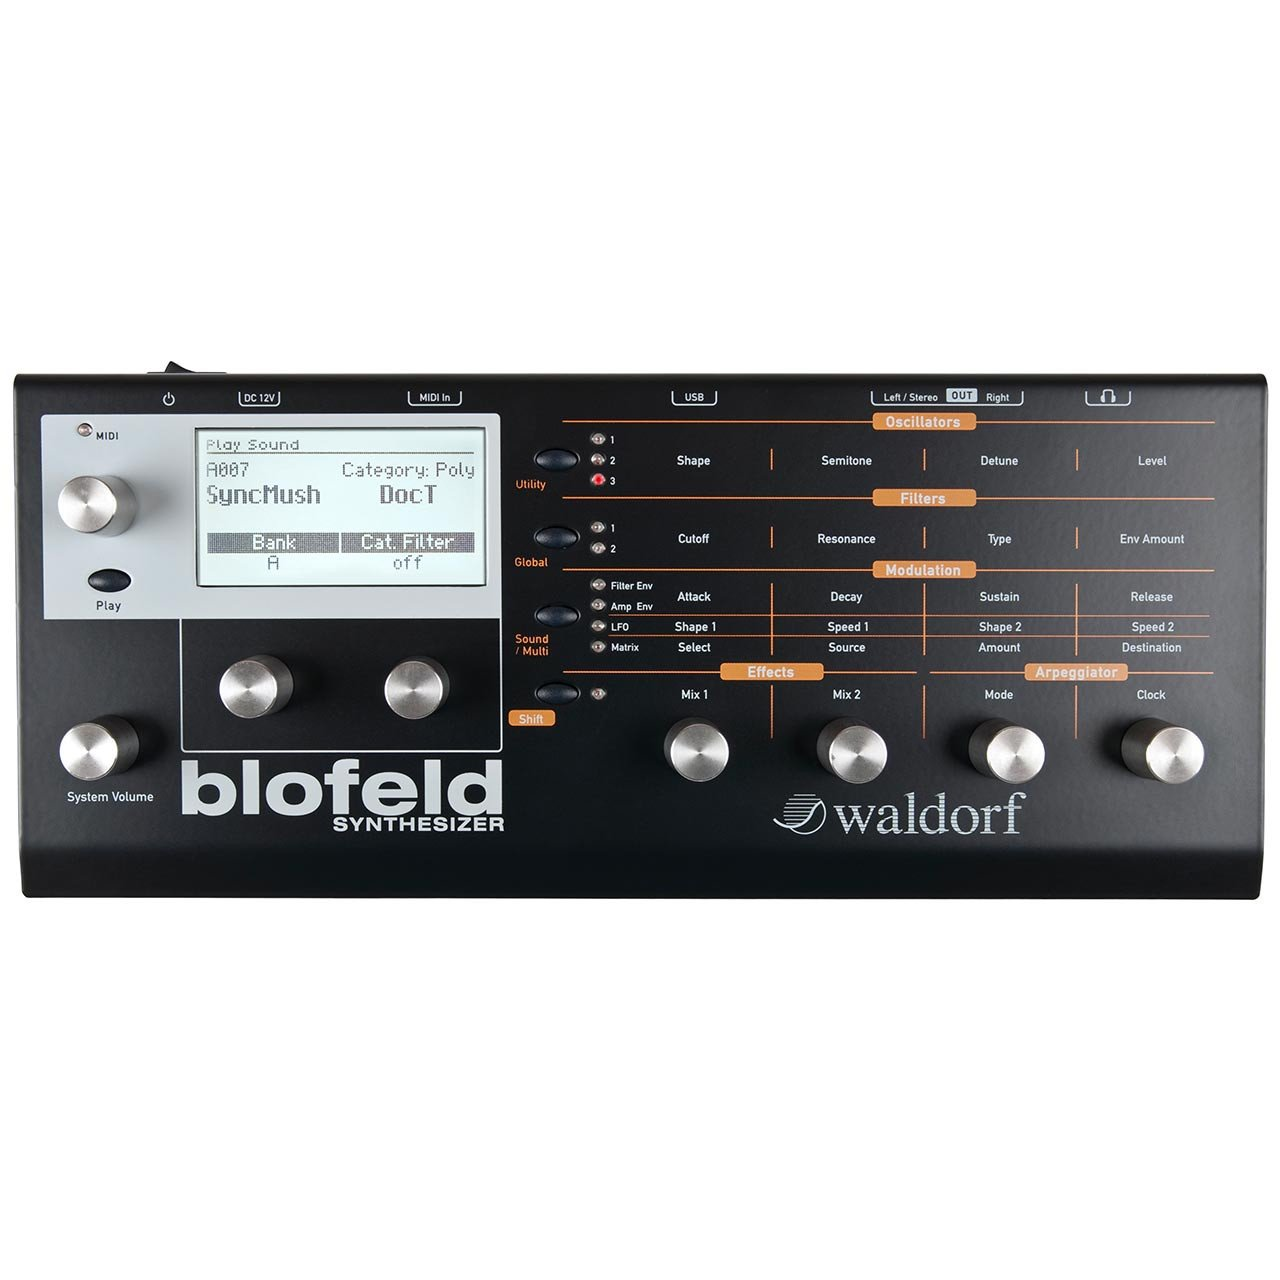 Waldorf Blofeld Desktop Digital Synthesizer